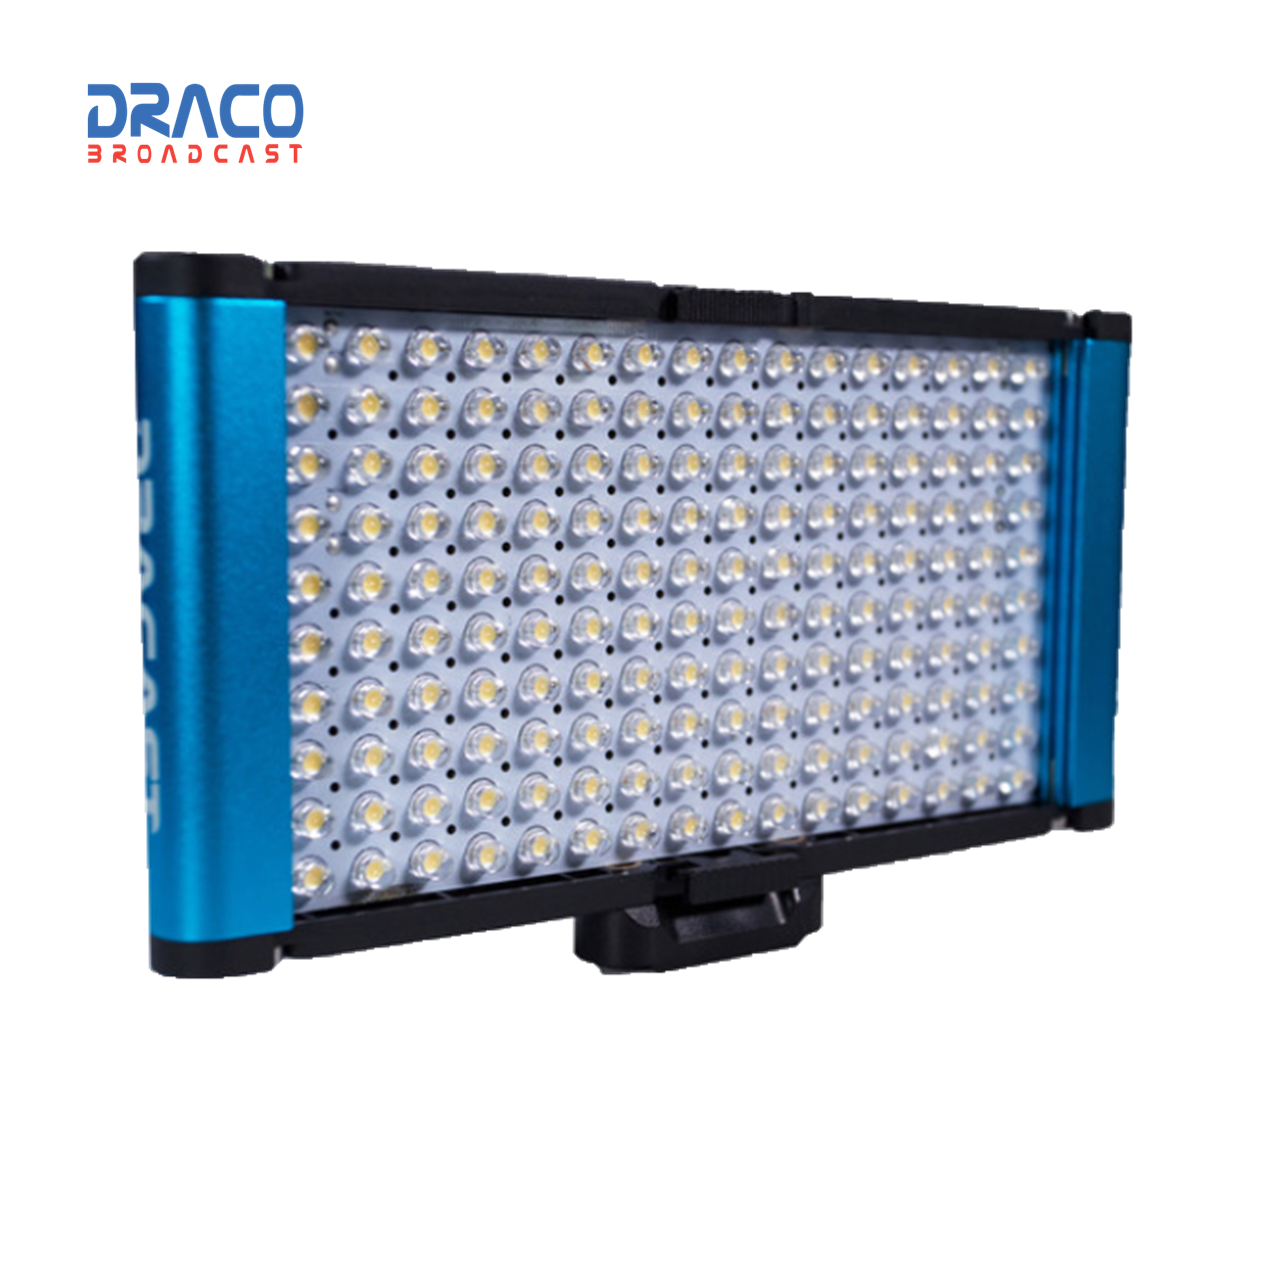 Dracast Camlux Pro Daylight On-Camera Light Lighting Draco Broadcast